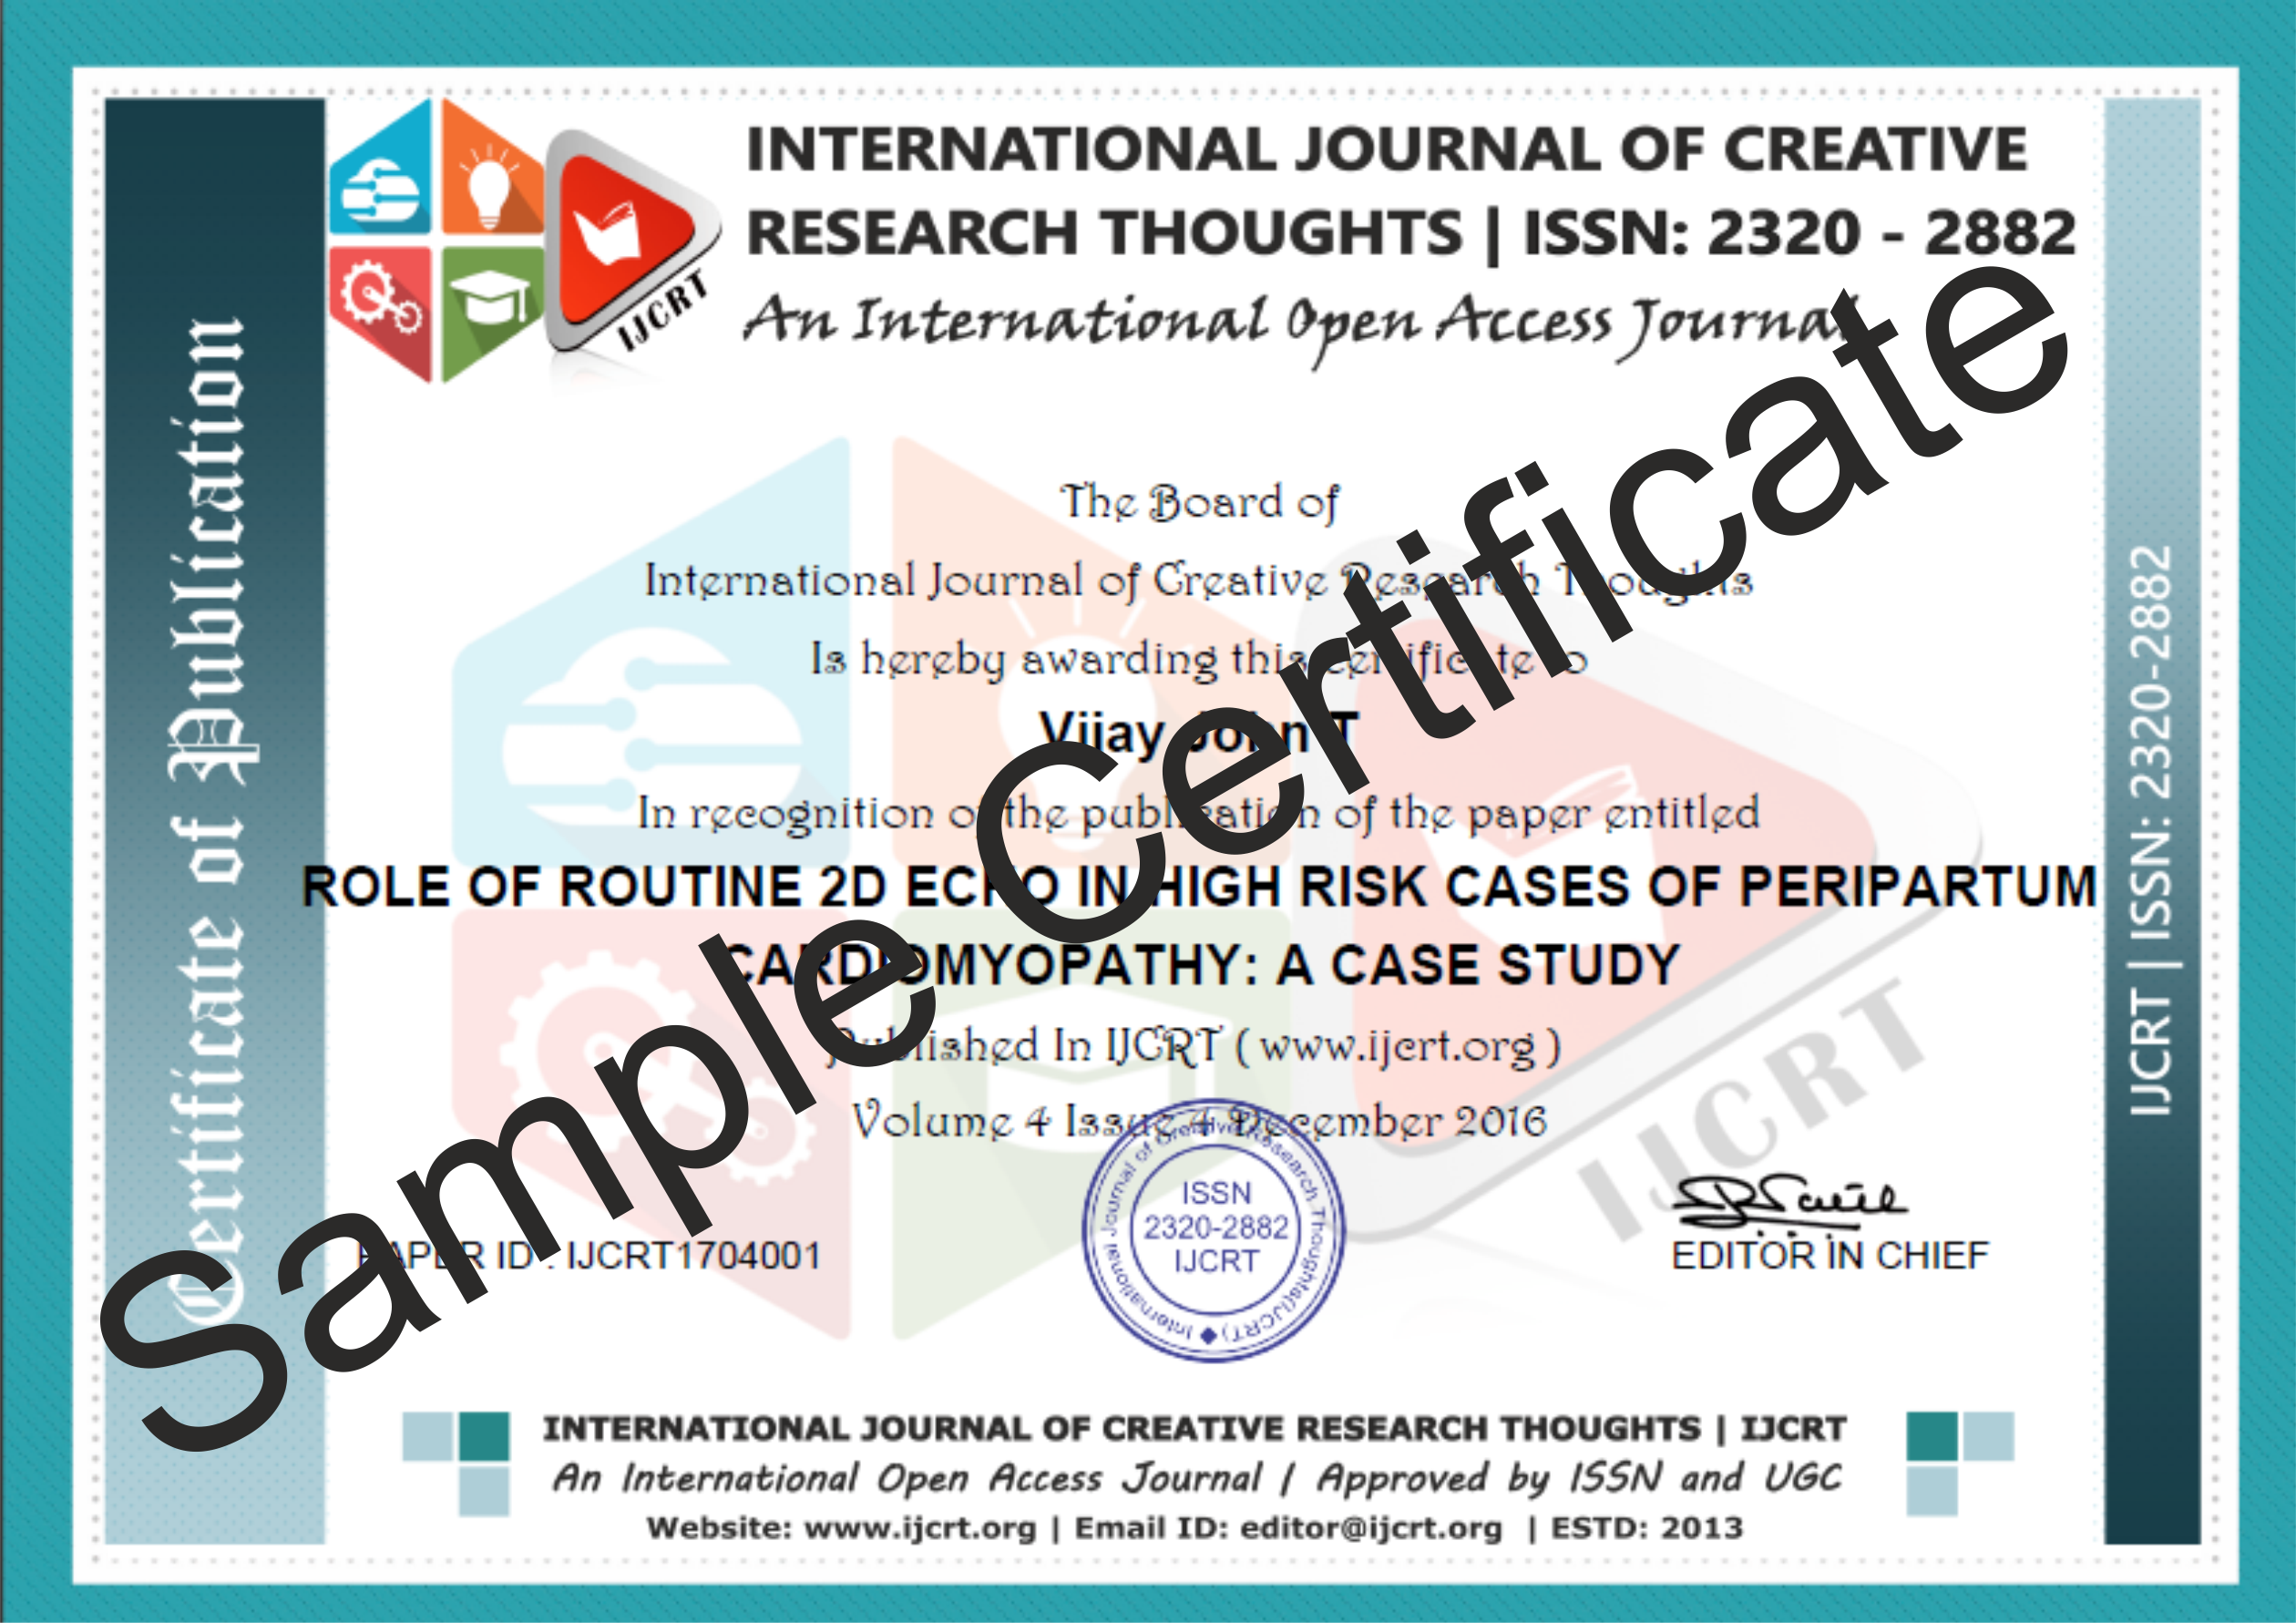 018 Research Paper Sample Certificate Best Journals To Publish Stunning Papers In Computer Science List Of Full